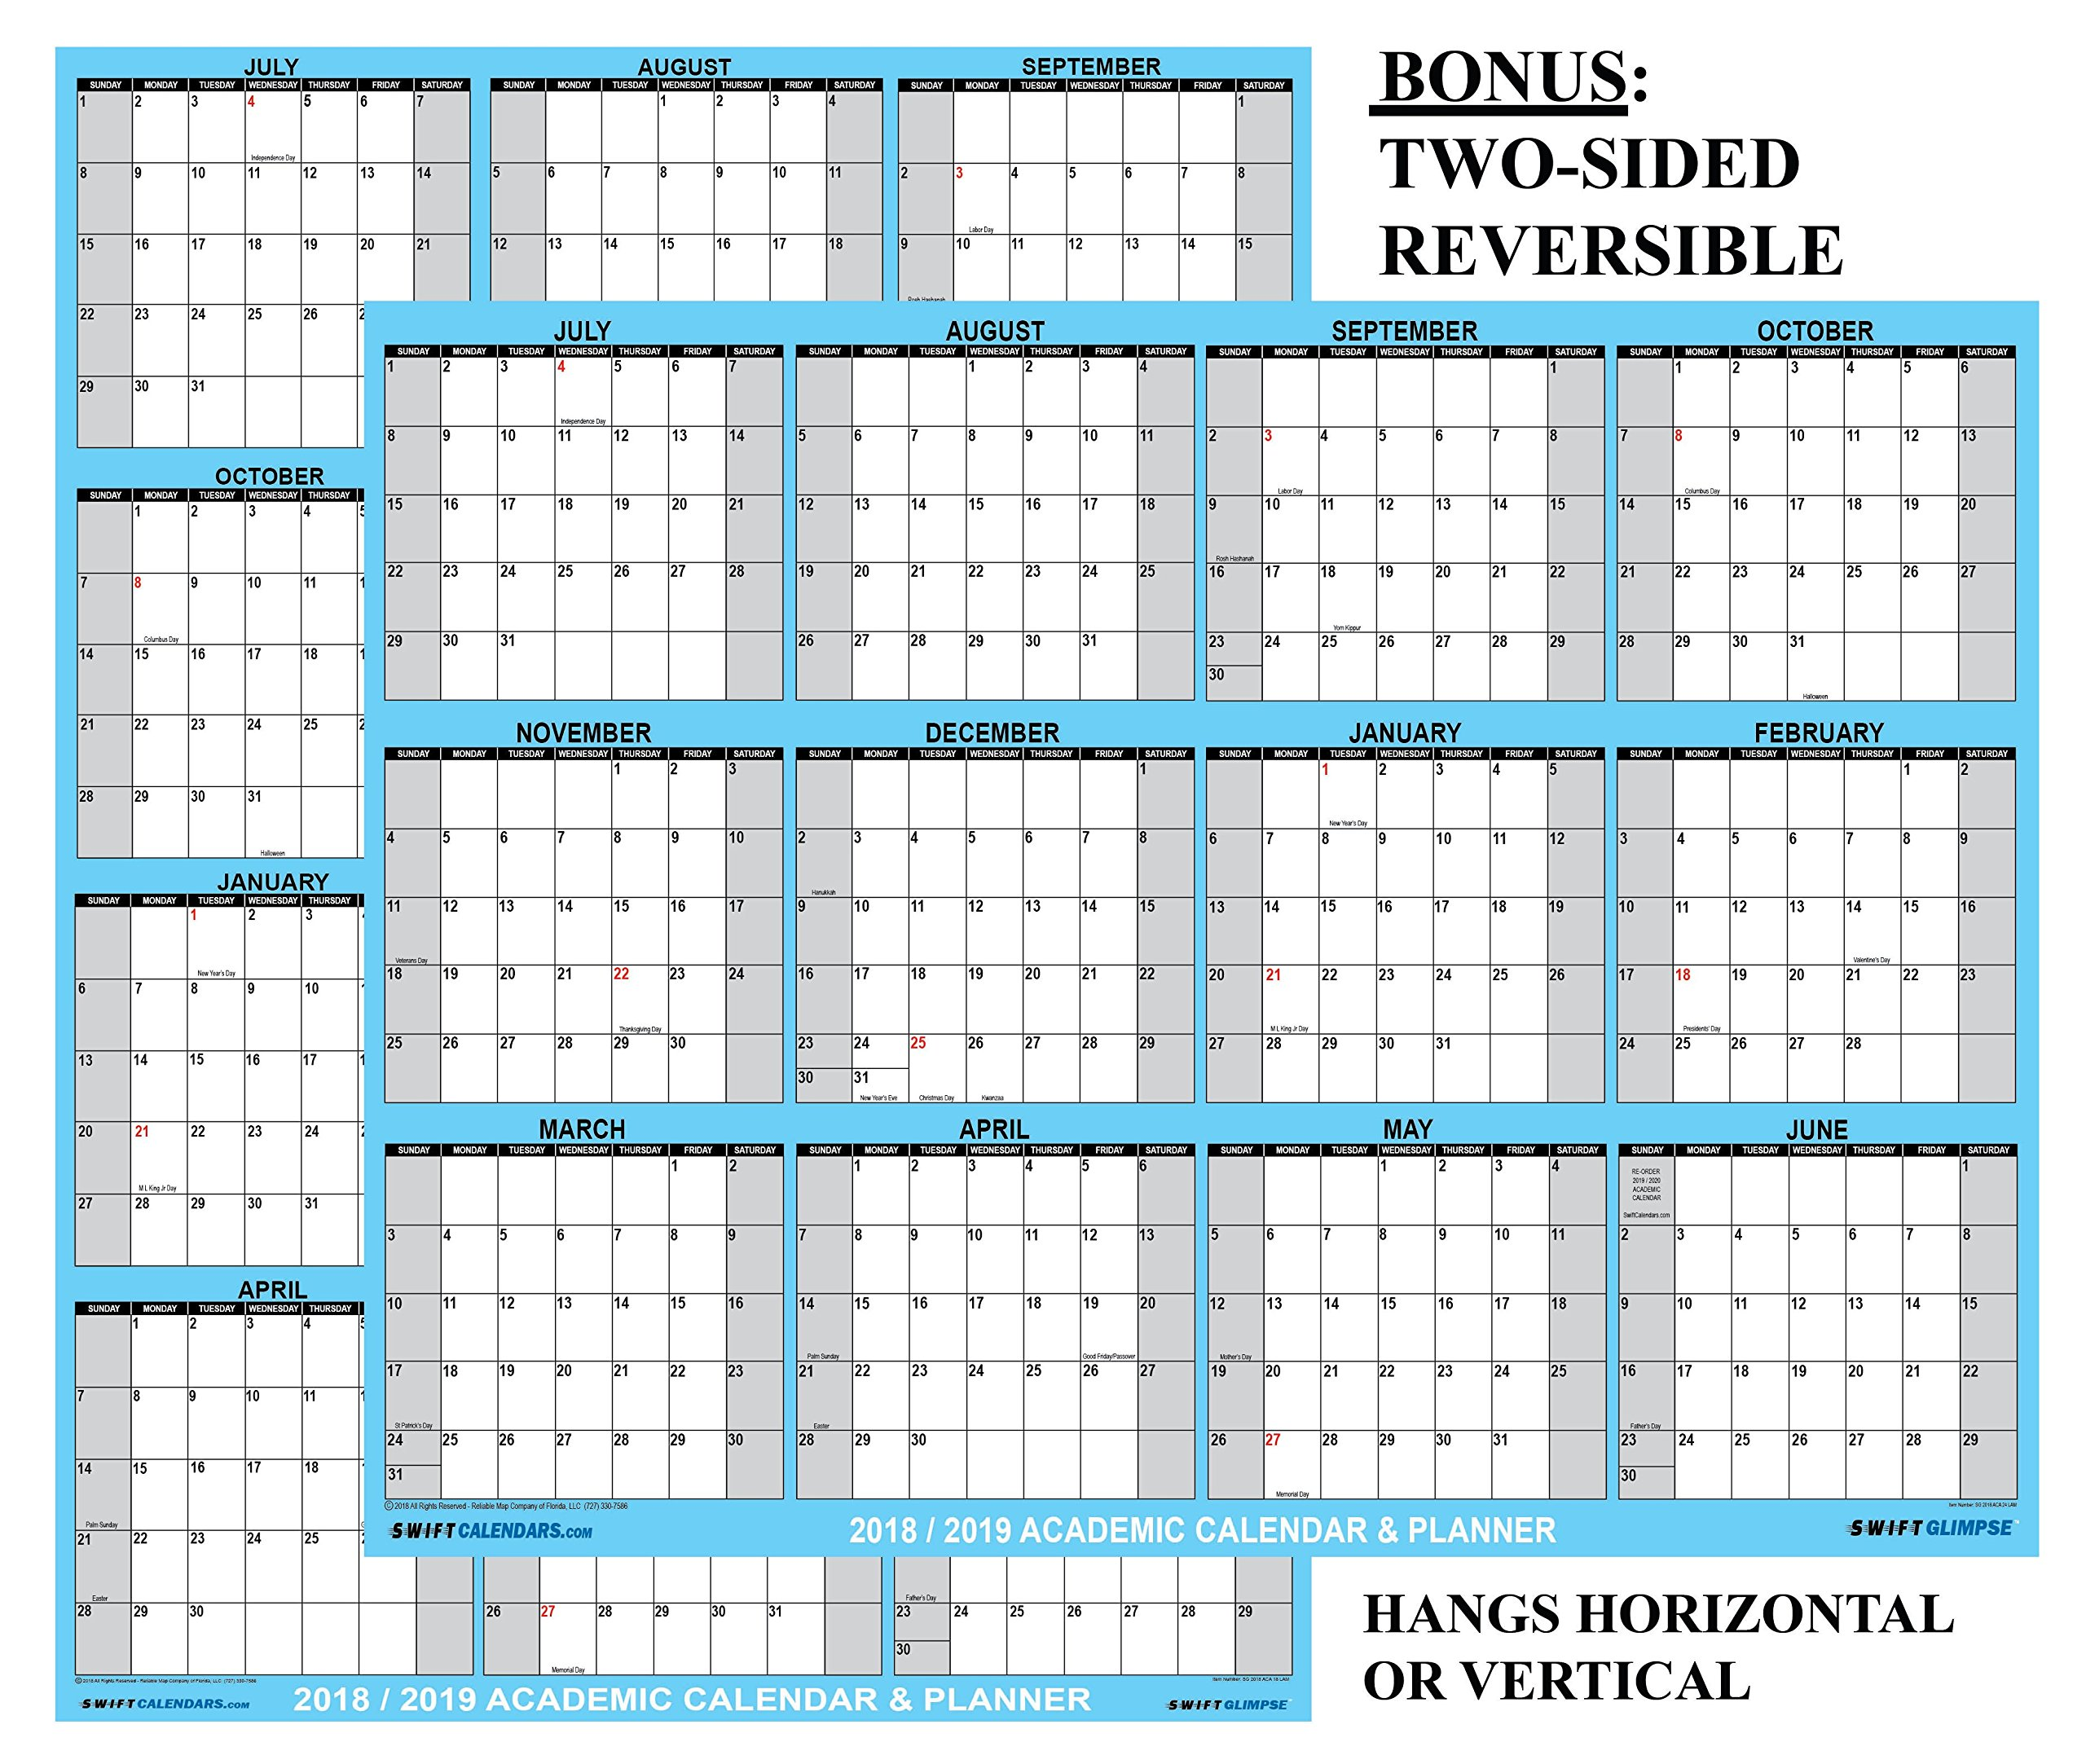 24x36 SwiftGlimpse 2018-2019 Academic Wall Calendar Erasable Large Jumbo Oversized Wet & Dry Erase Laminated 12 Month Planner, 2 Sided Vertical/Horizontal Reversible, June to July - CLASSIC BLUE